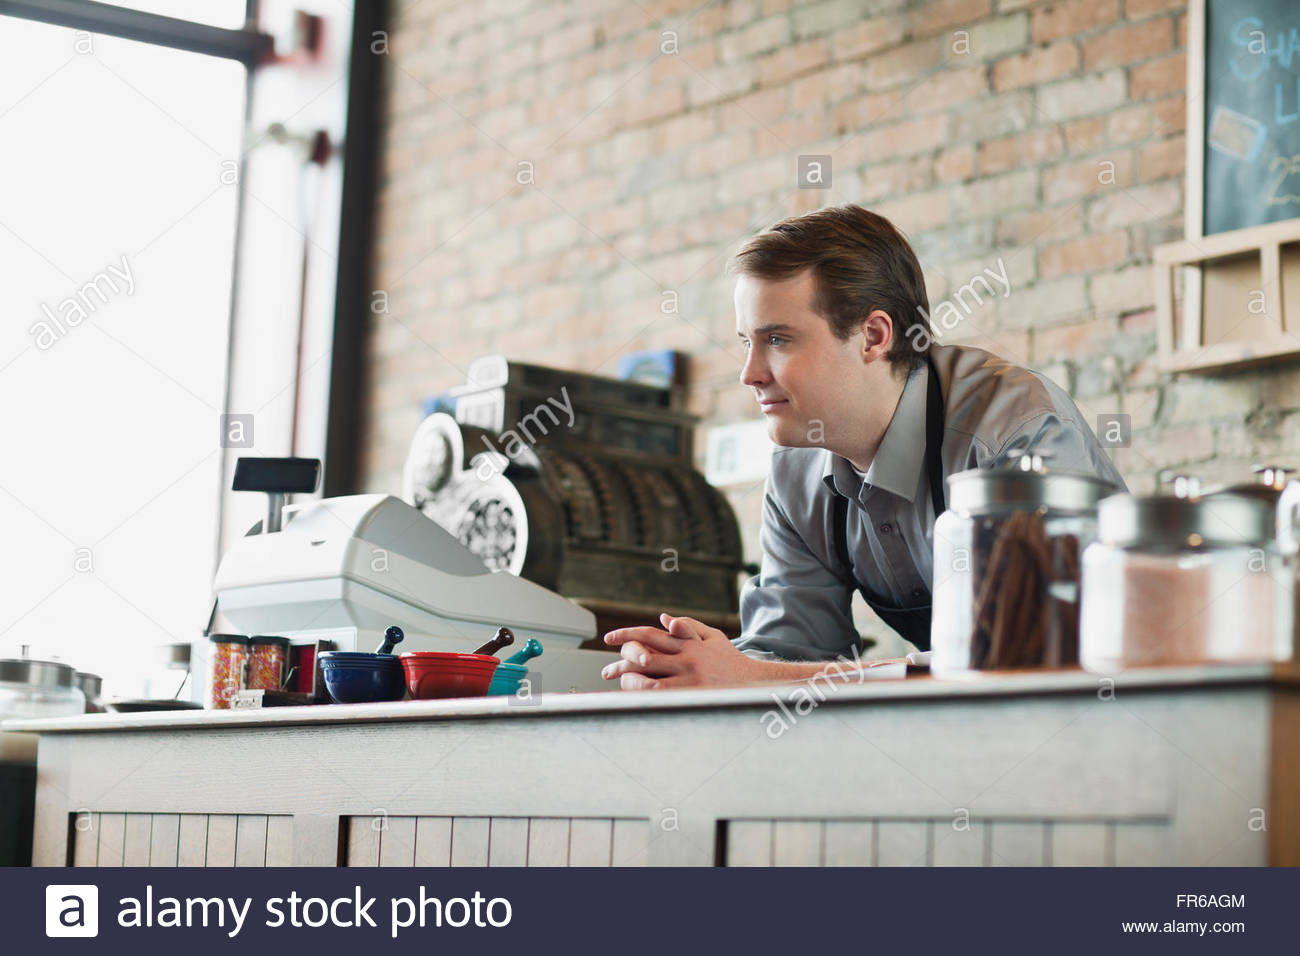 merchant of retail spice store - Stock Image